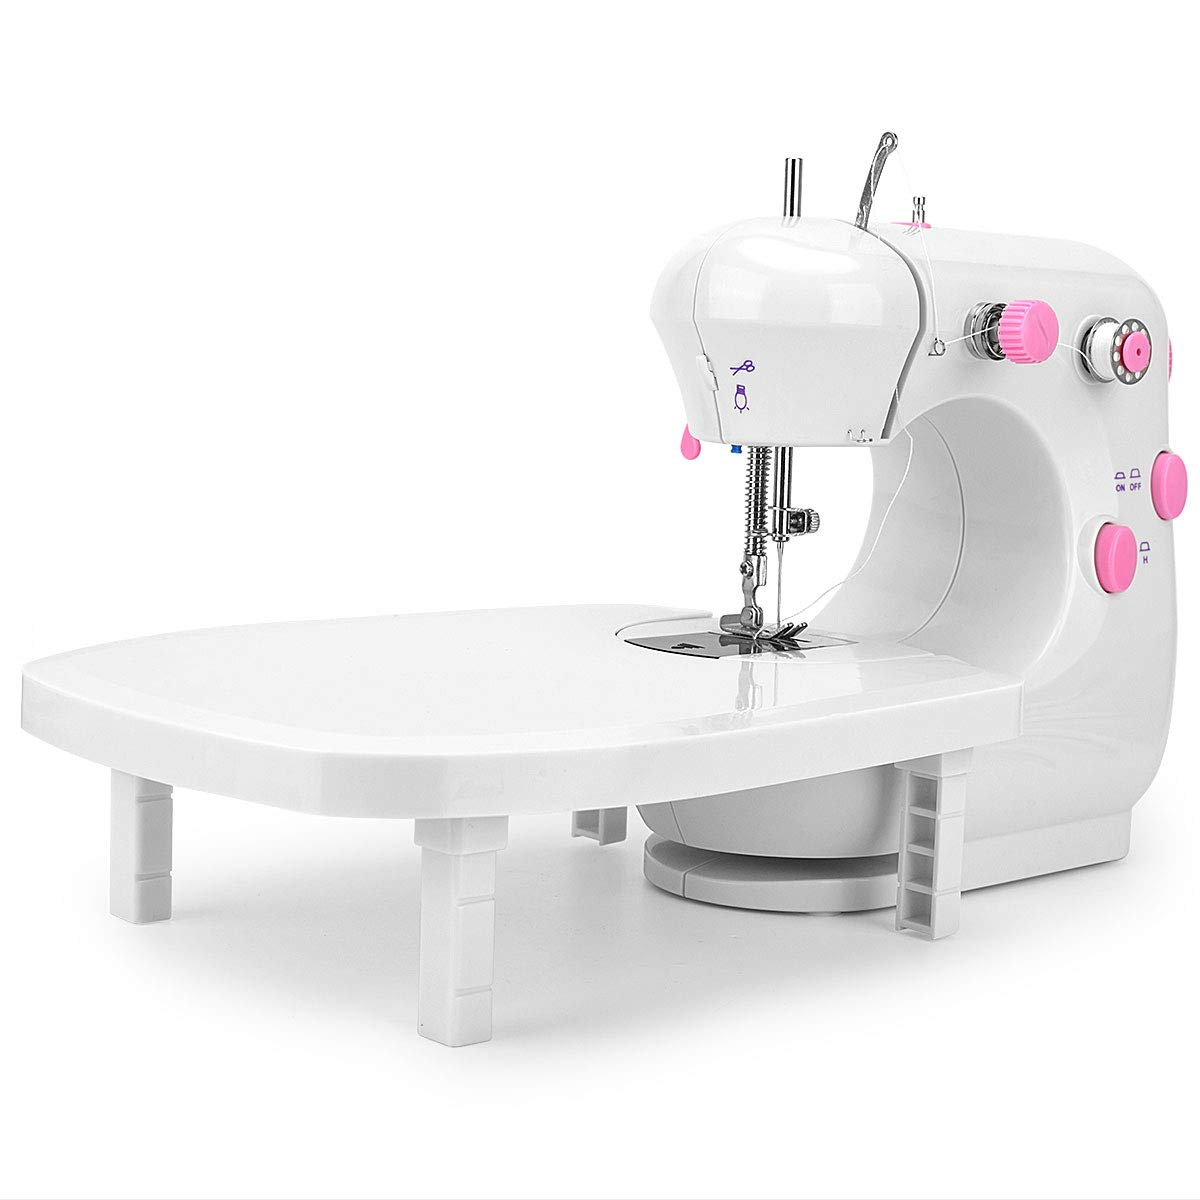 JXJH Mini Sewing Machine with Extension Table Portable Adjustable 2-Speed Crafting Mending Machine with Foot Pedal Upgrade Version for Household Multifunction Thick Fabrics Sewing Machine